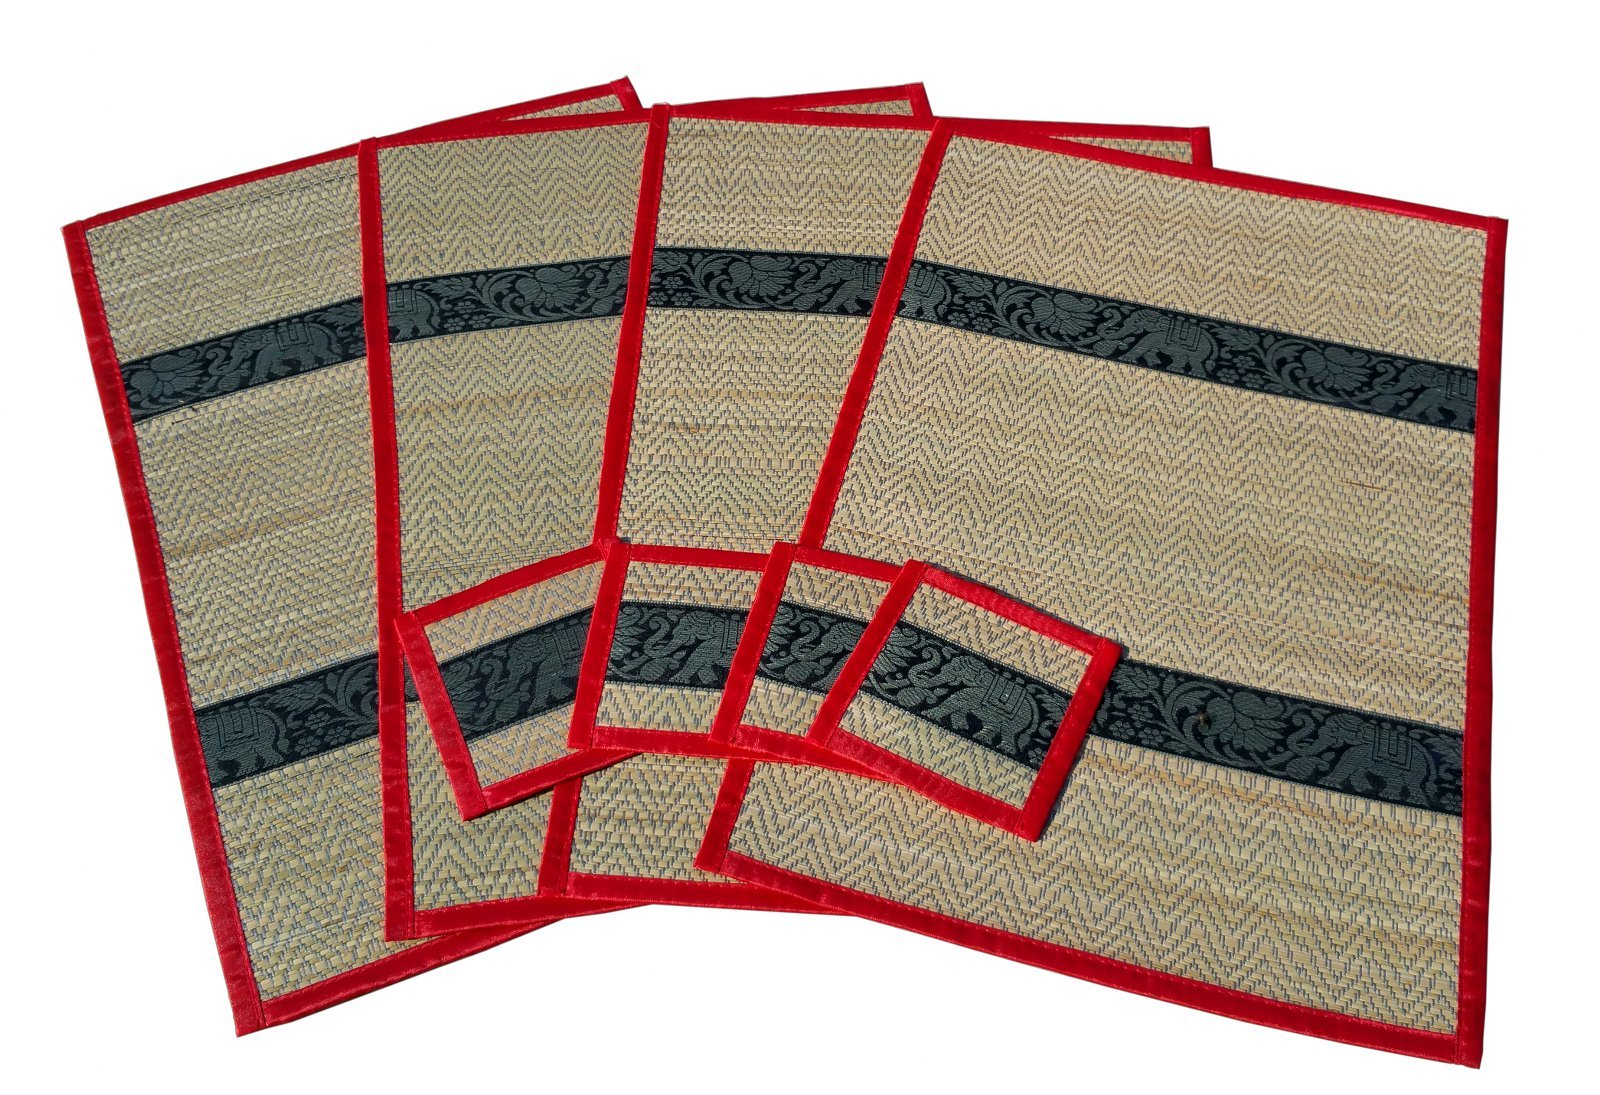 Reed and Silk Placemats And Coasters Handmade In Thailand (Set of 4) Large Size Elephant Motif (Red)